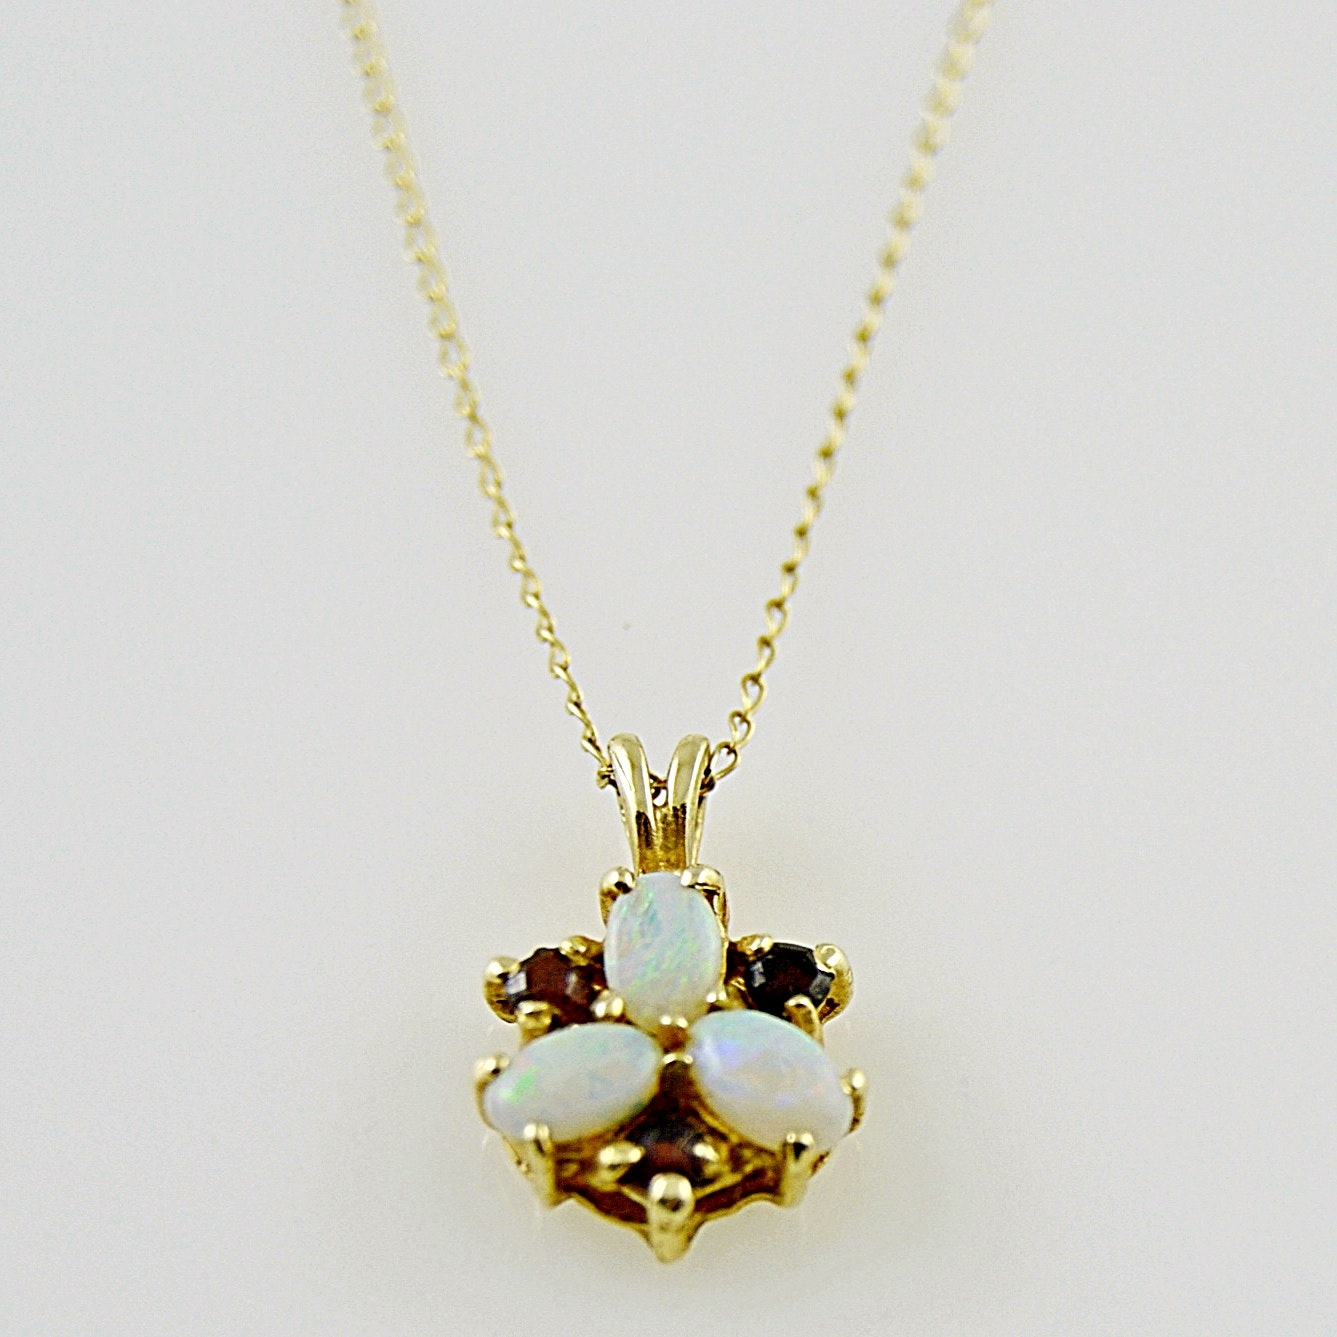 14K Yellow Gold, Opal and Garnet Pendant Necklace